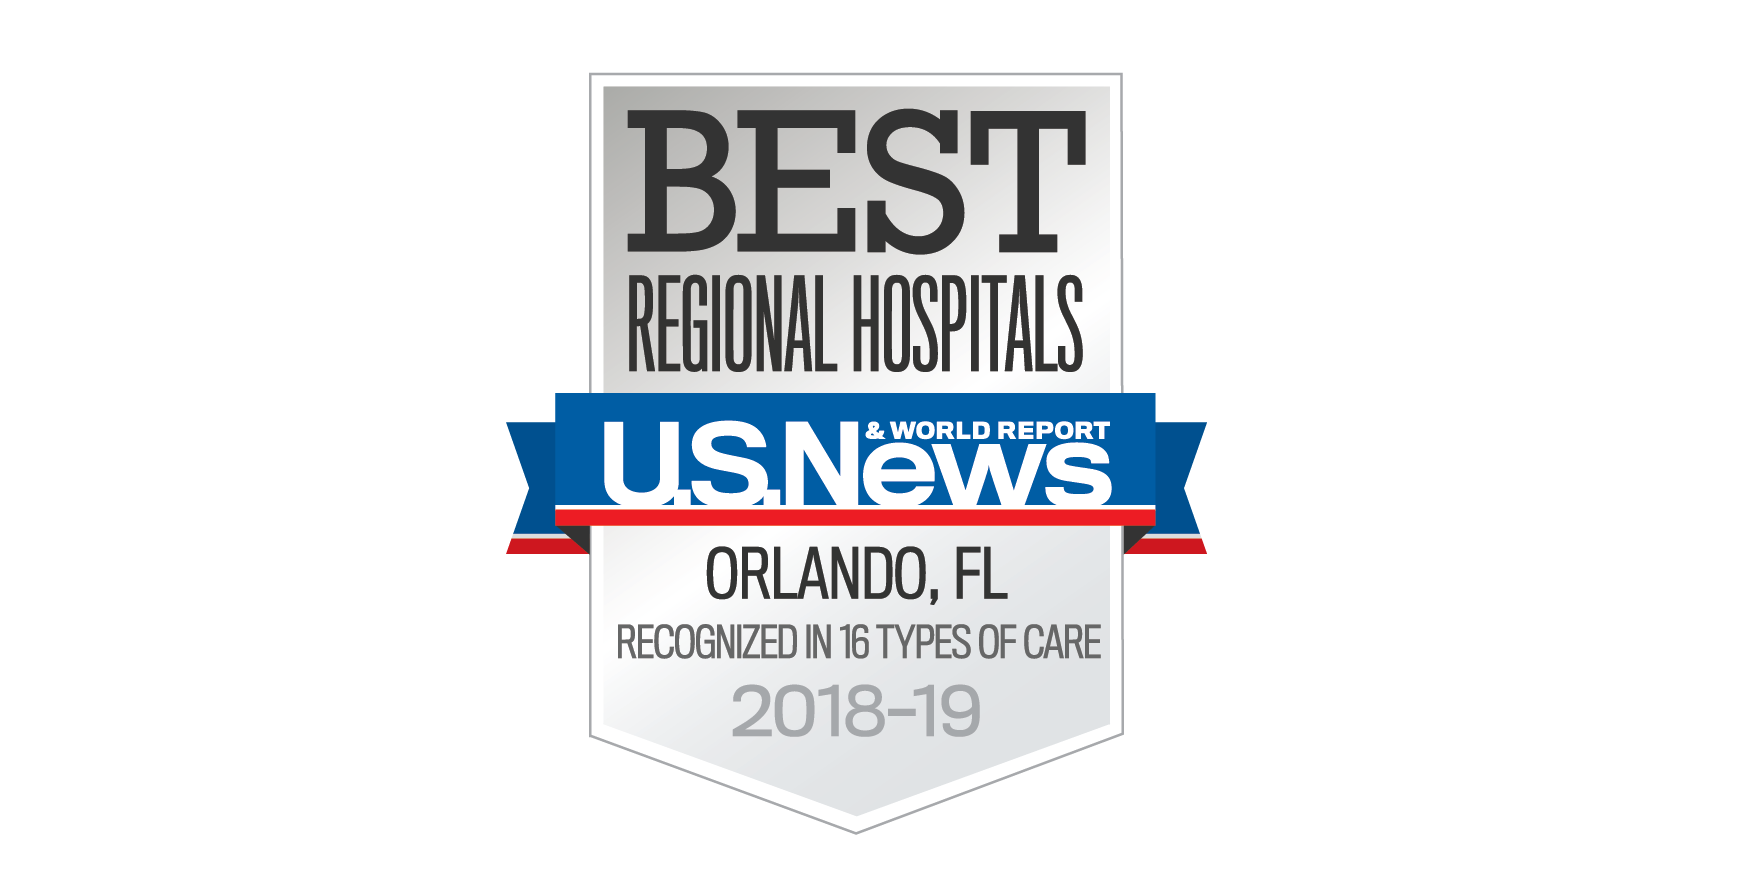 U.S. News and World Report Best Regional Hospitals logo